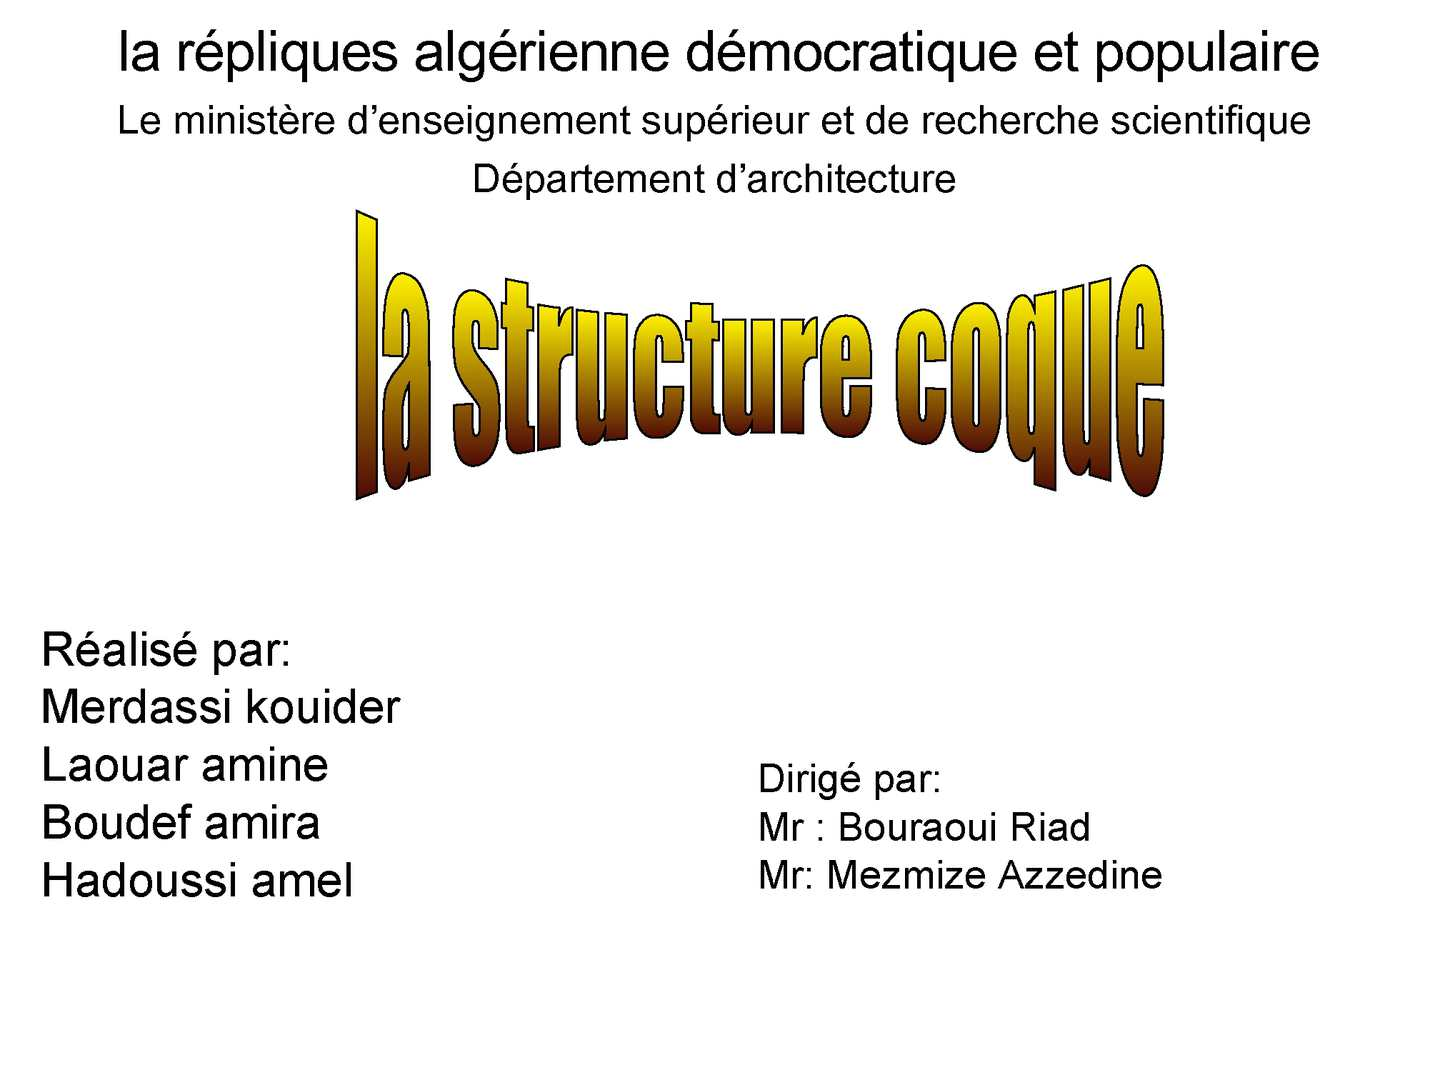 la structure coque